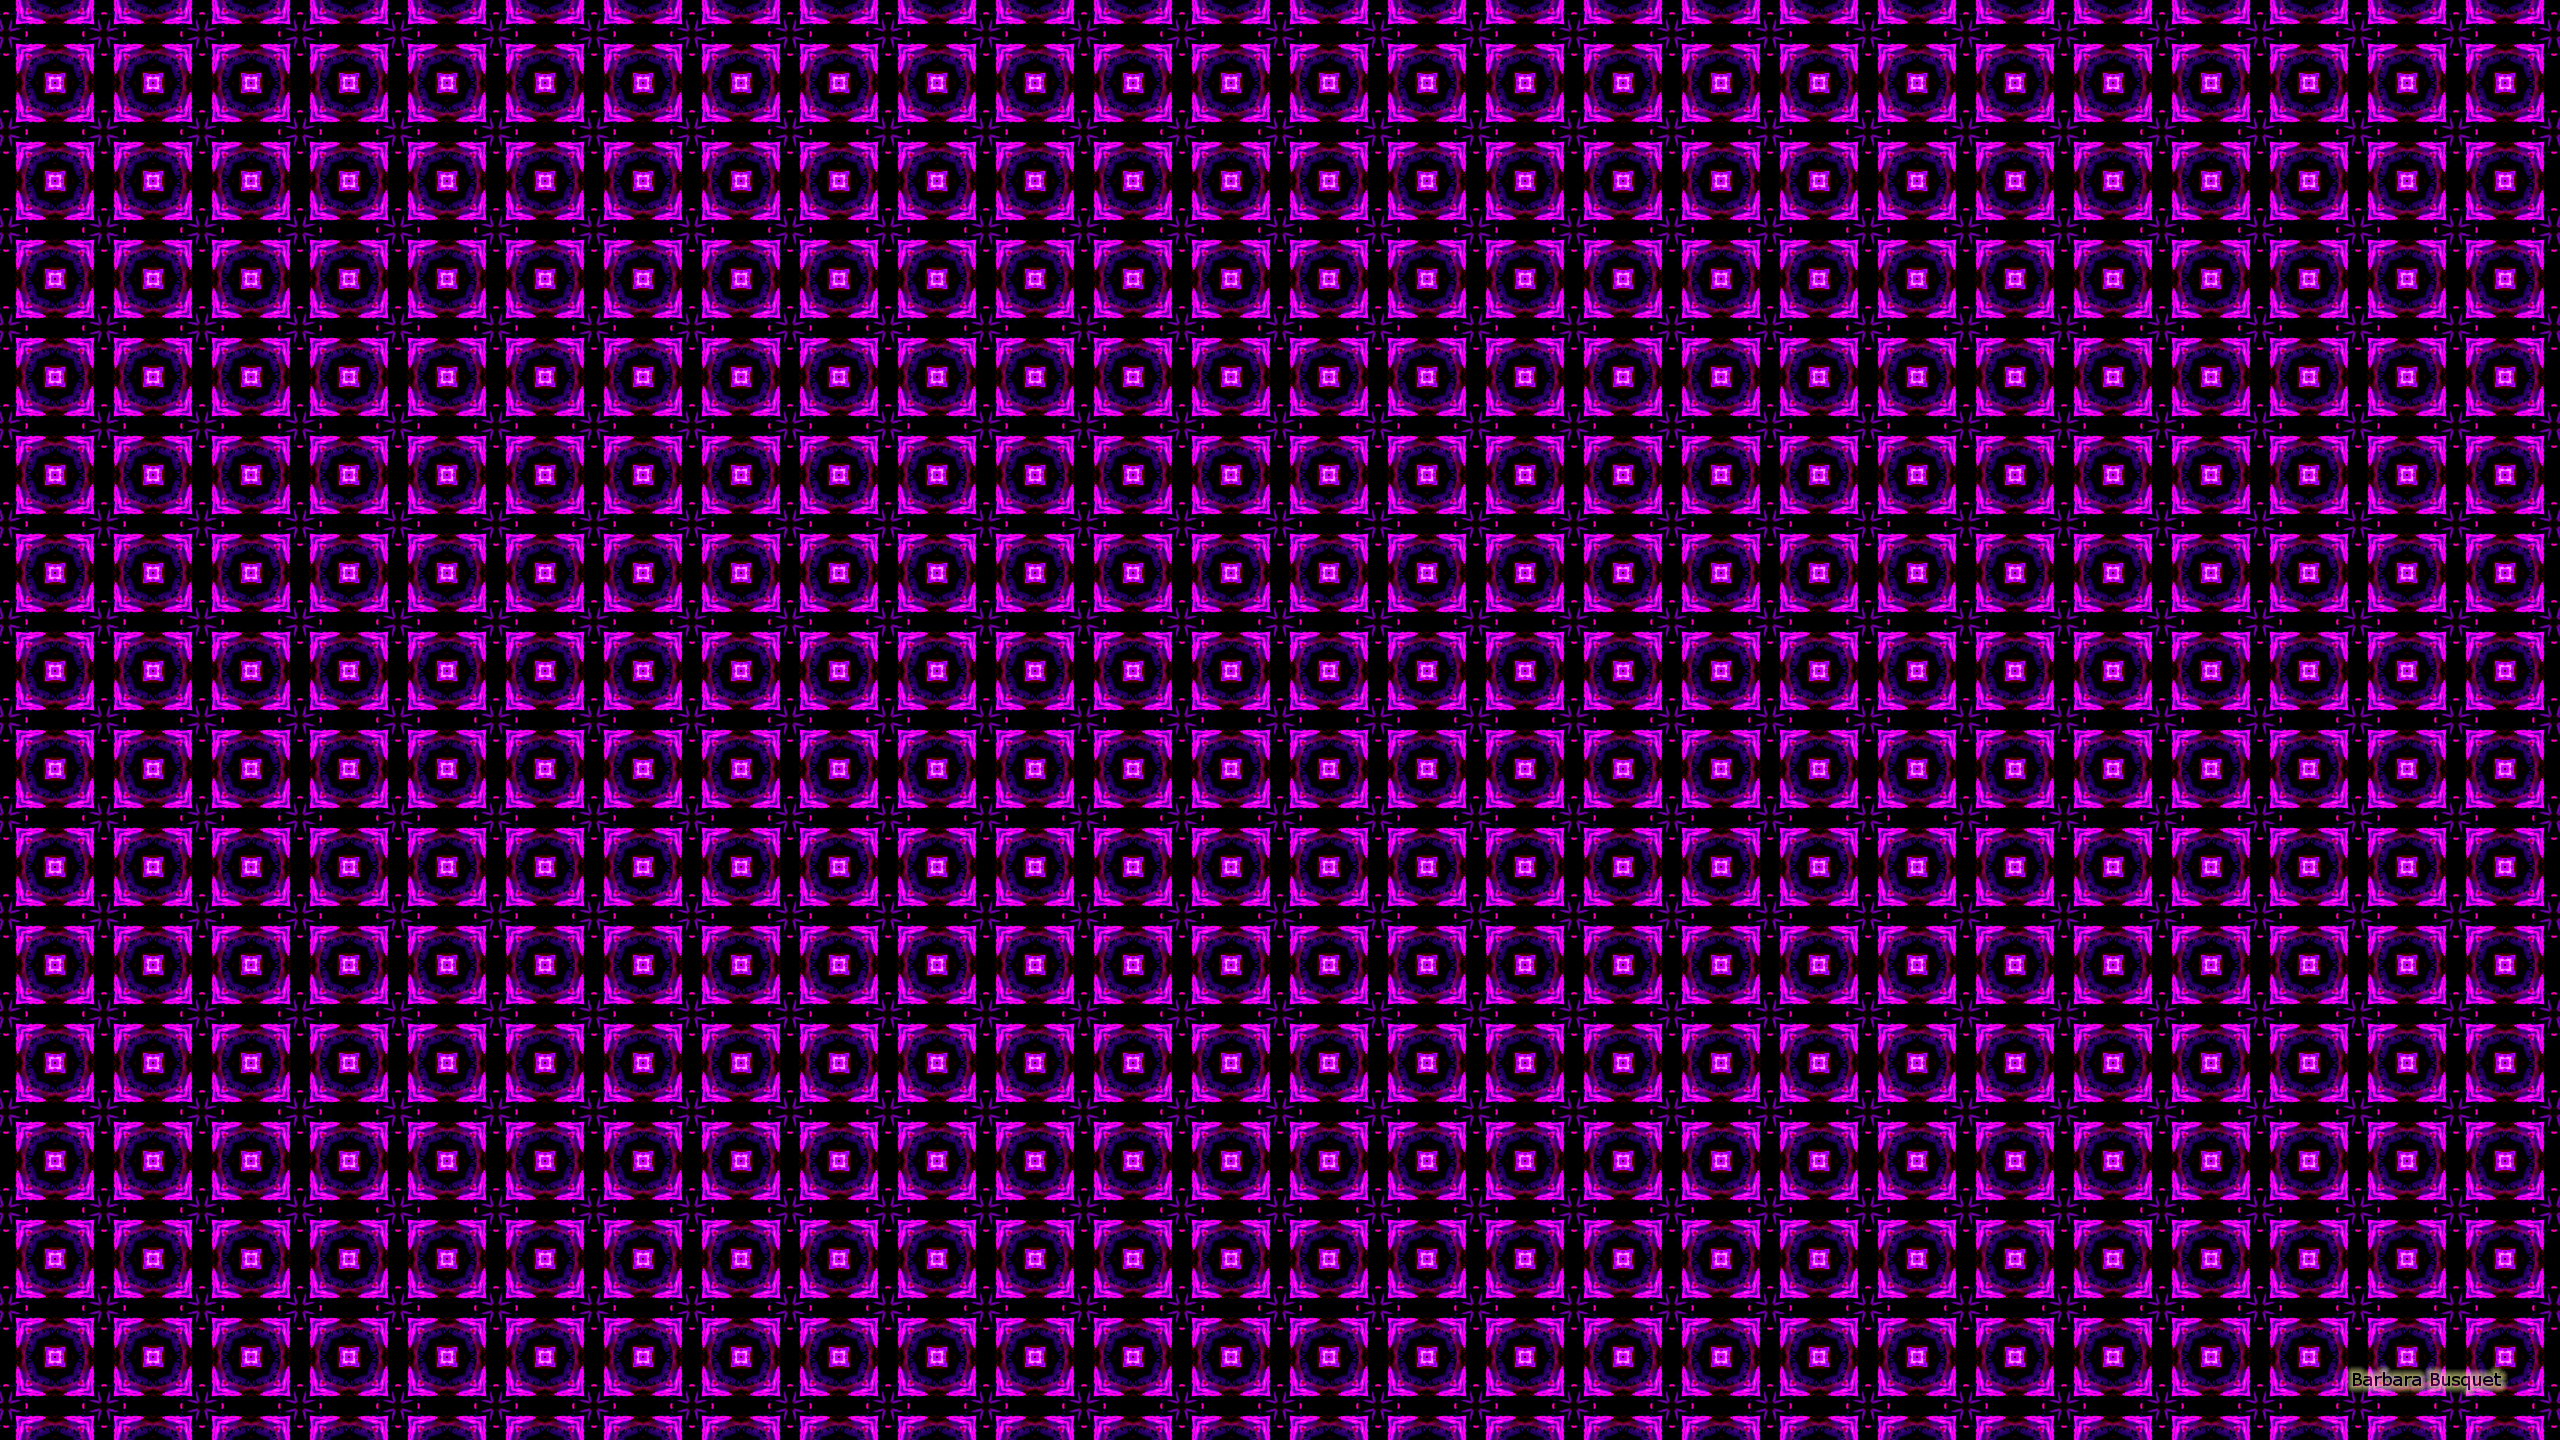 Dark Squares Wallpaper In The Colors Black And Purple